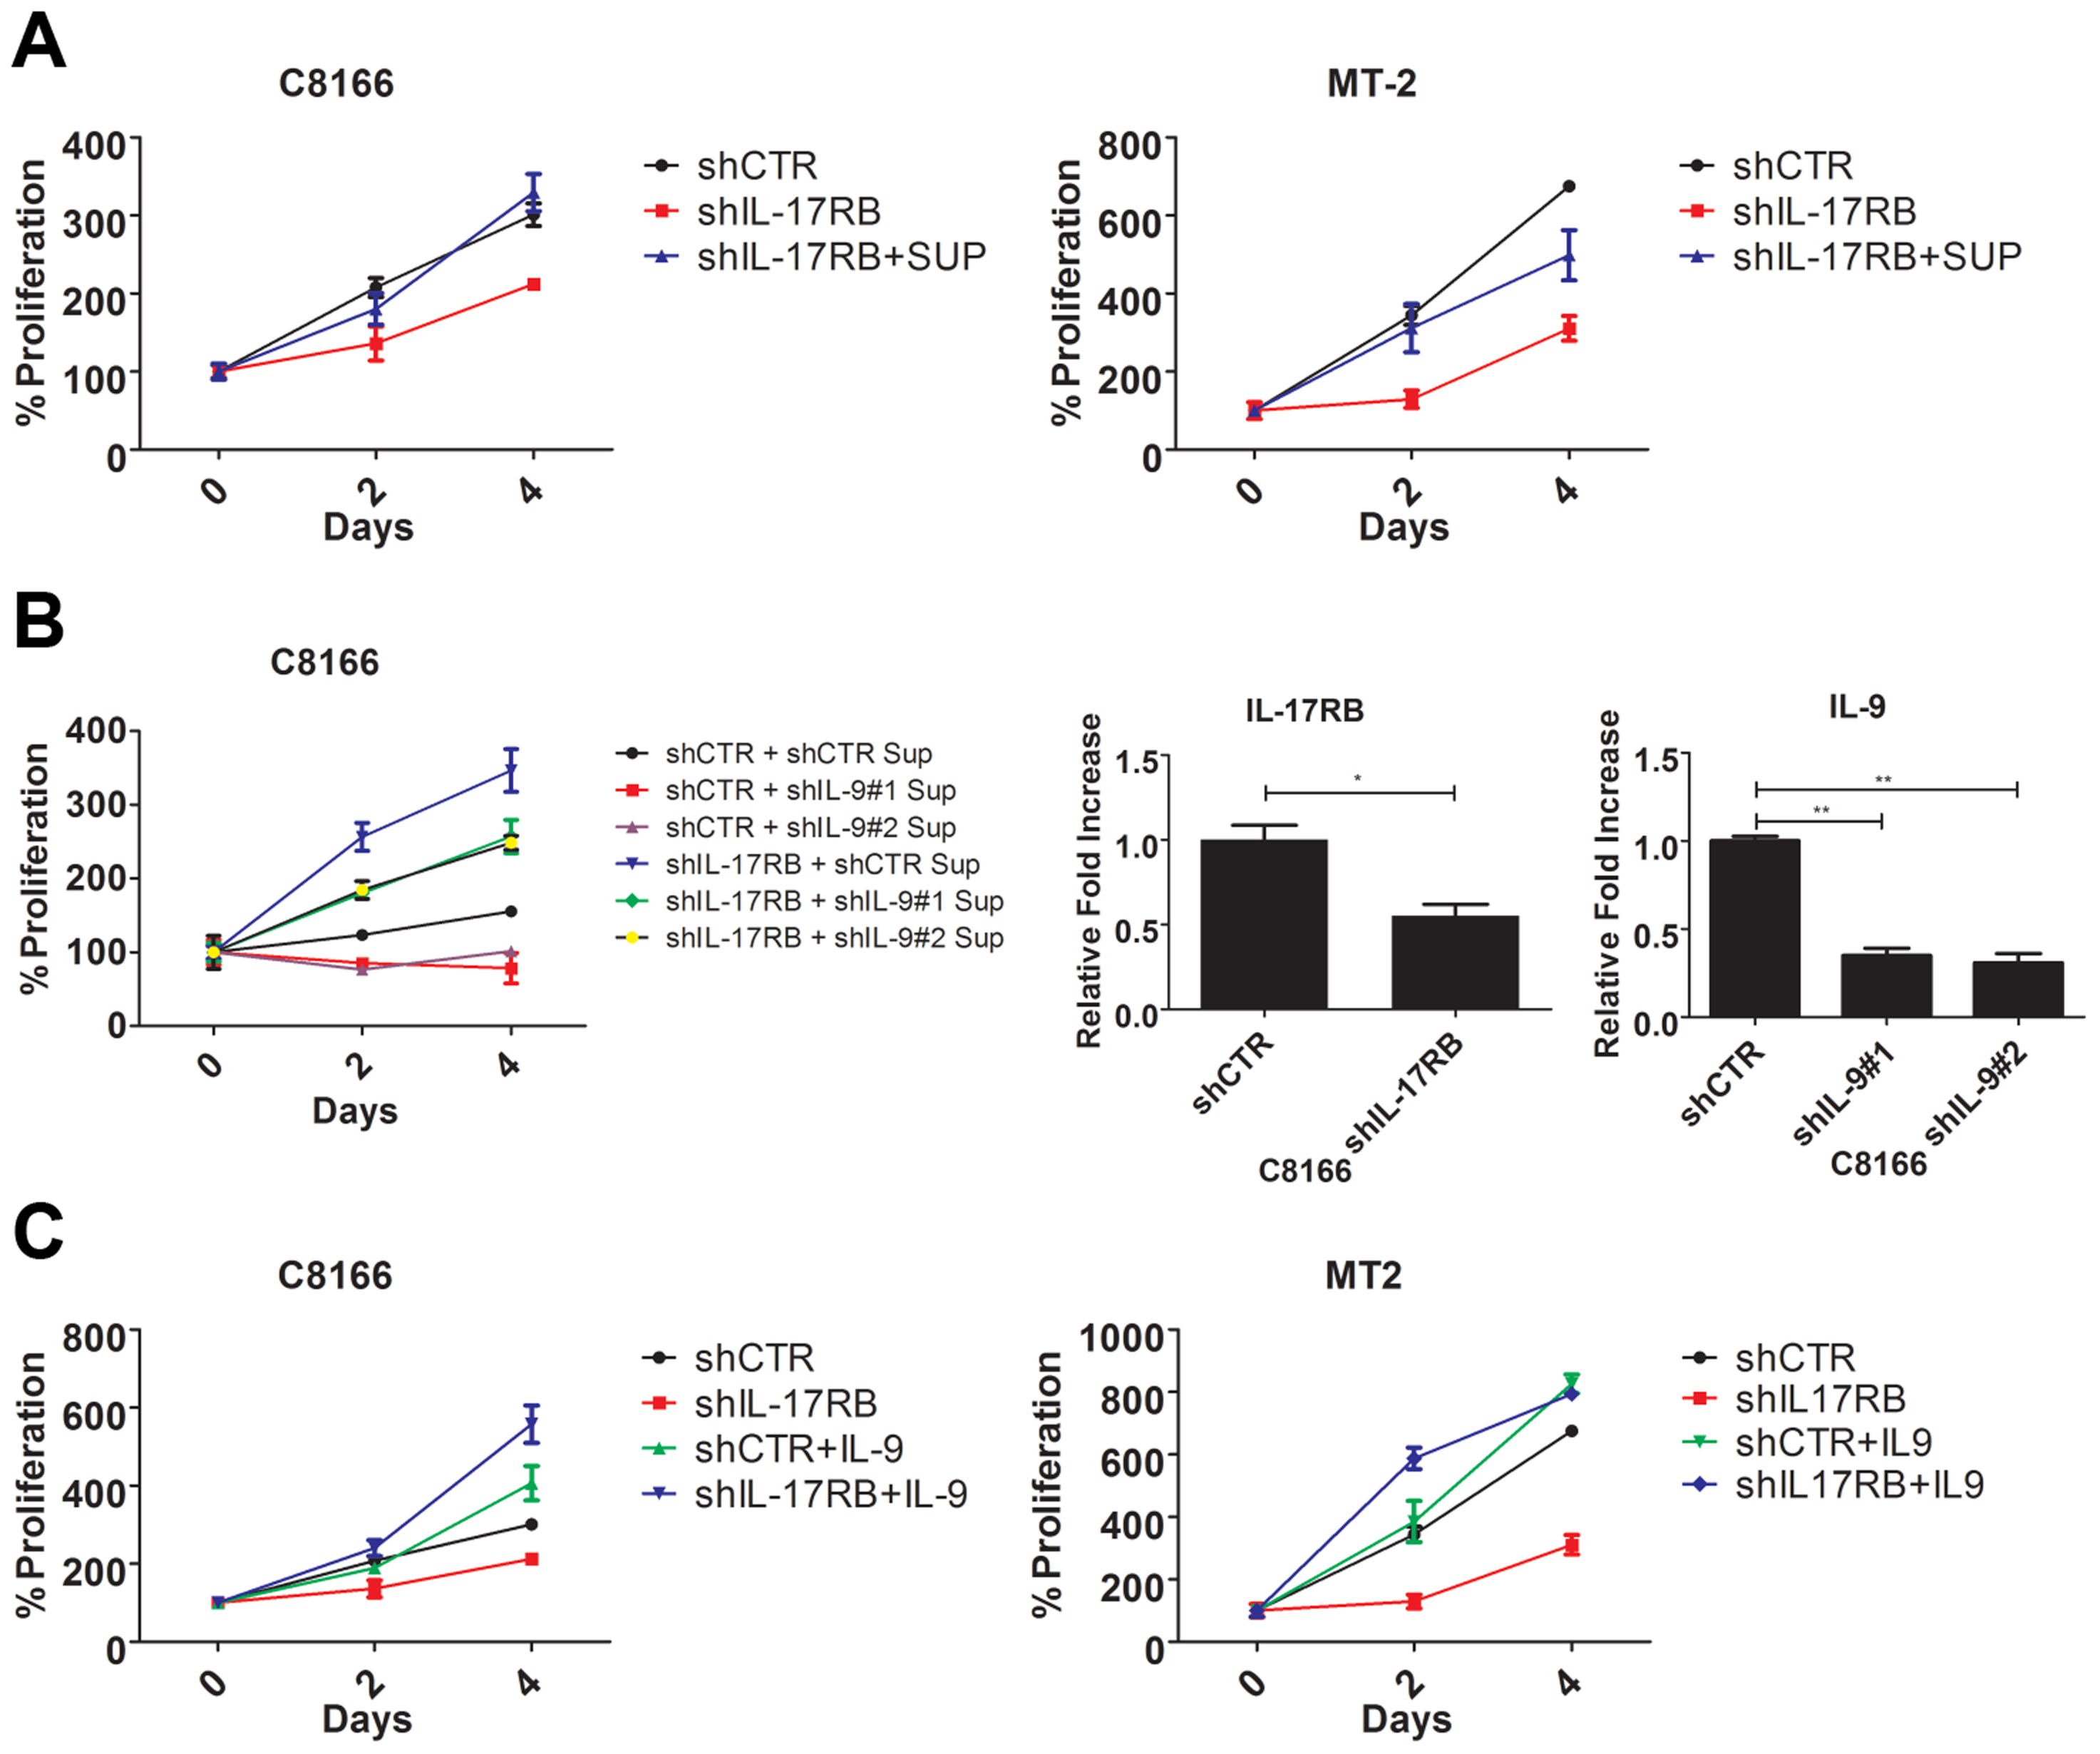 IL-9 is a key target gene downstream of IL-17RB that regulates the proliferation of HTLV-1 transformed cells.